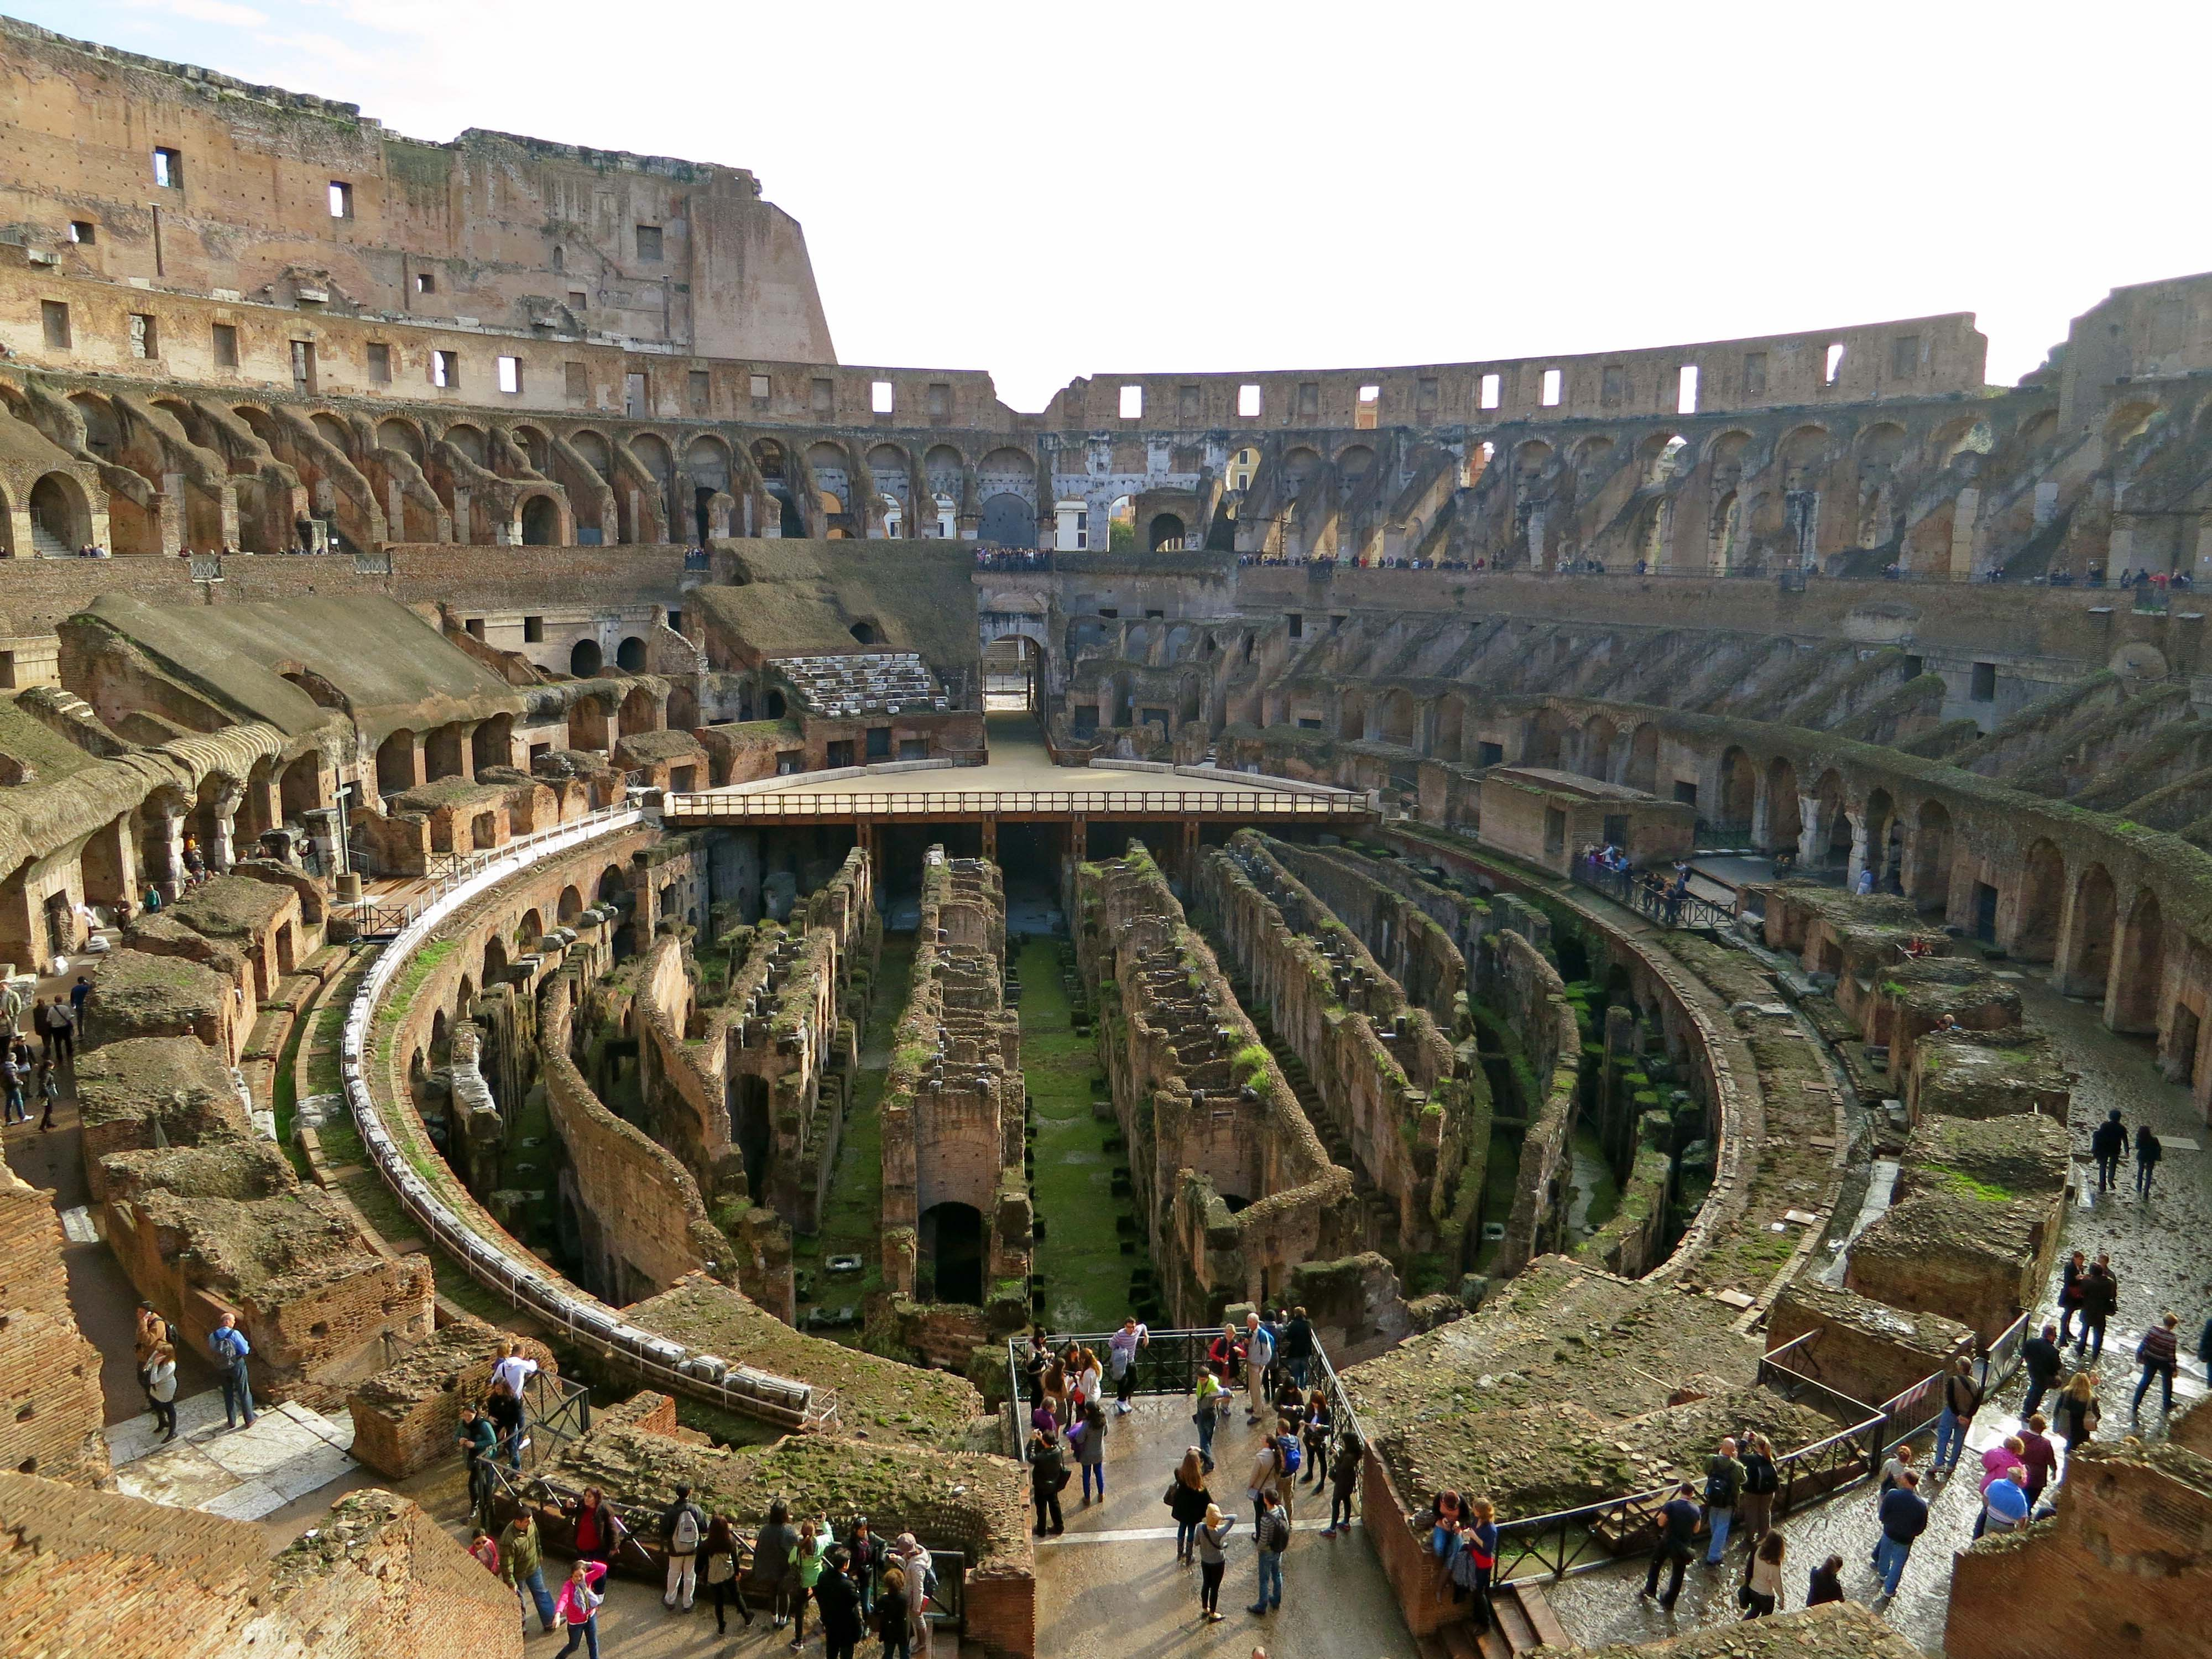 Looking down into the basement of the Colosseum where wild animals, props and scenery were stored.